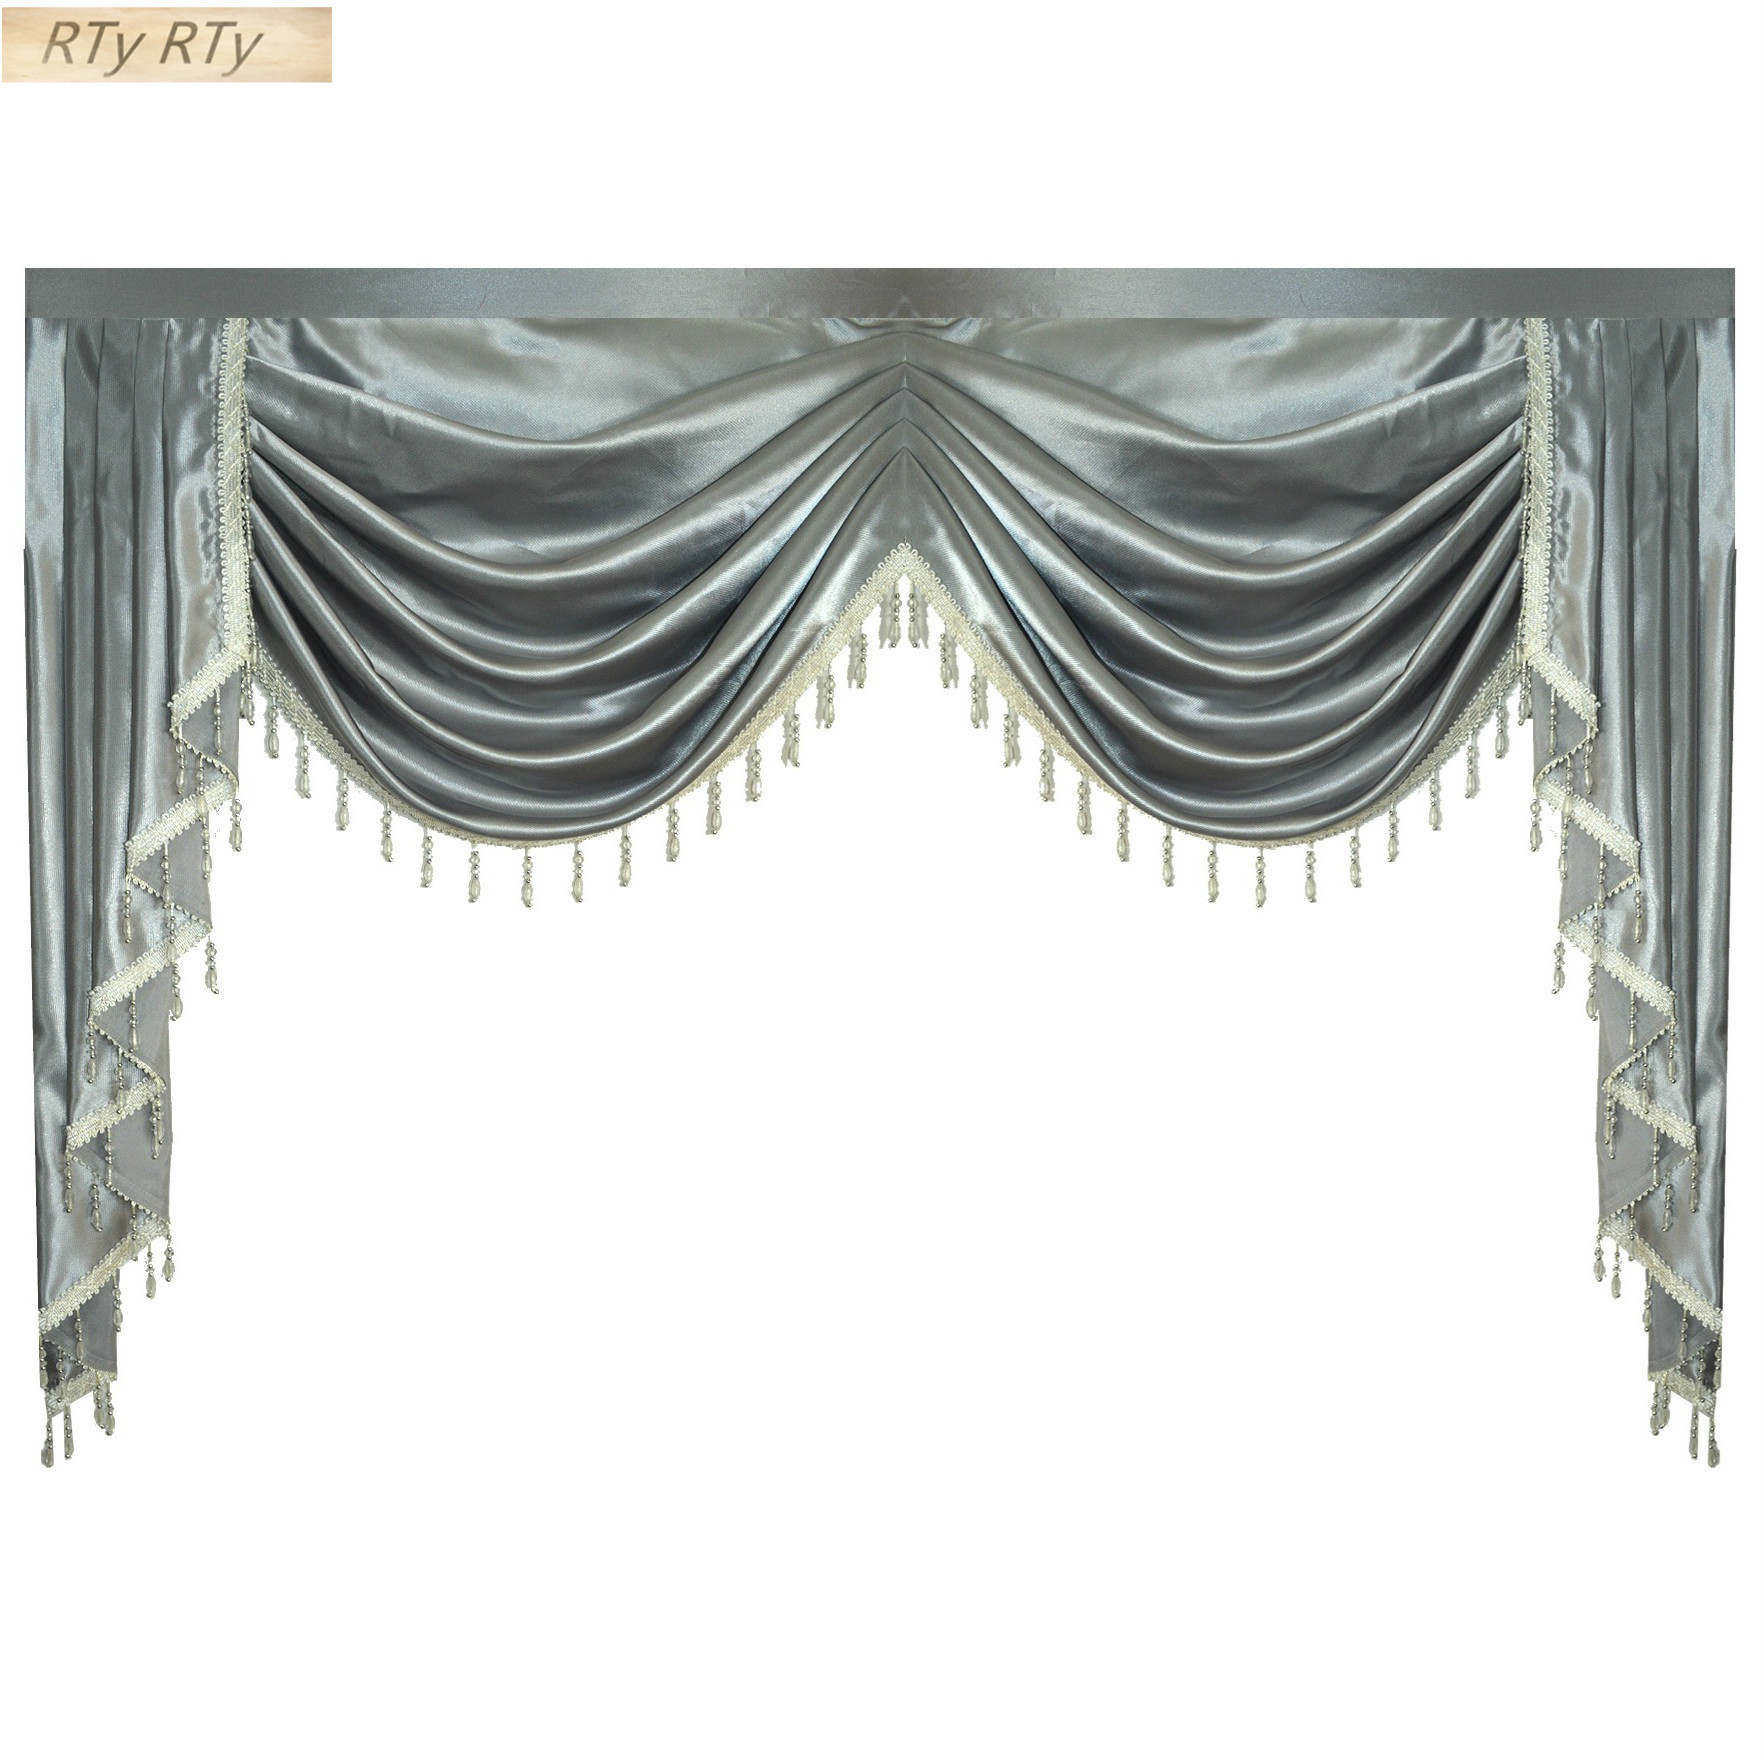 US $35.0 50% OFF|Valance Pure Grey Luxury Curtains for Living Room Window  Swag Curtains for Bedroom for Kitchen on AliExpress